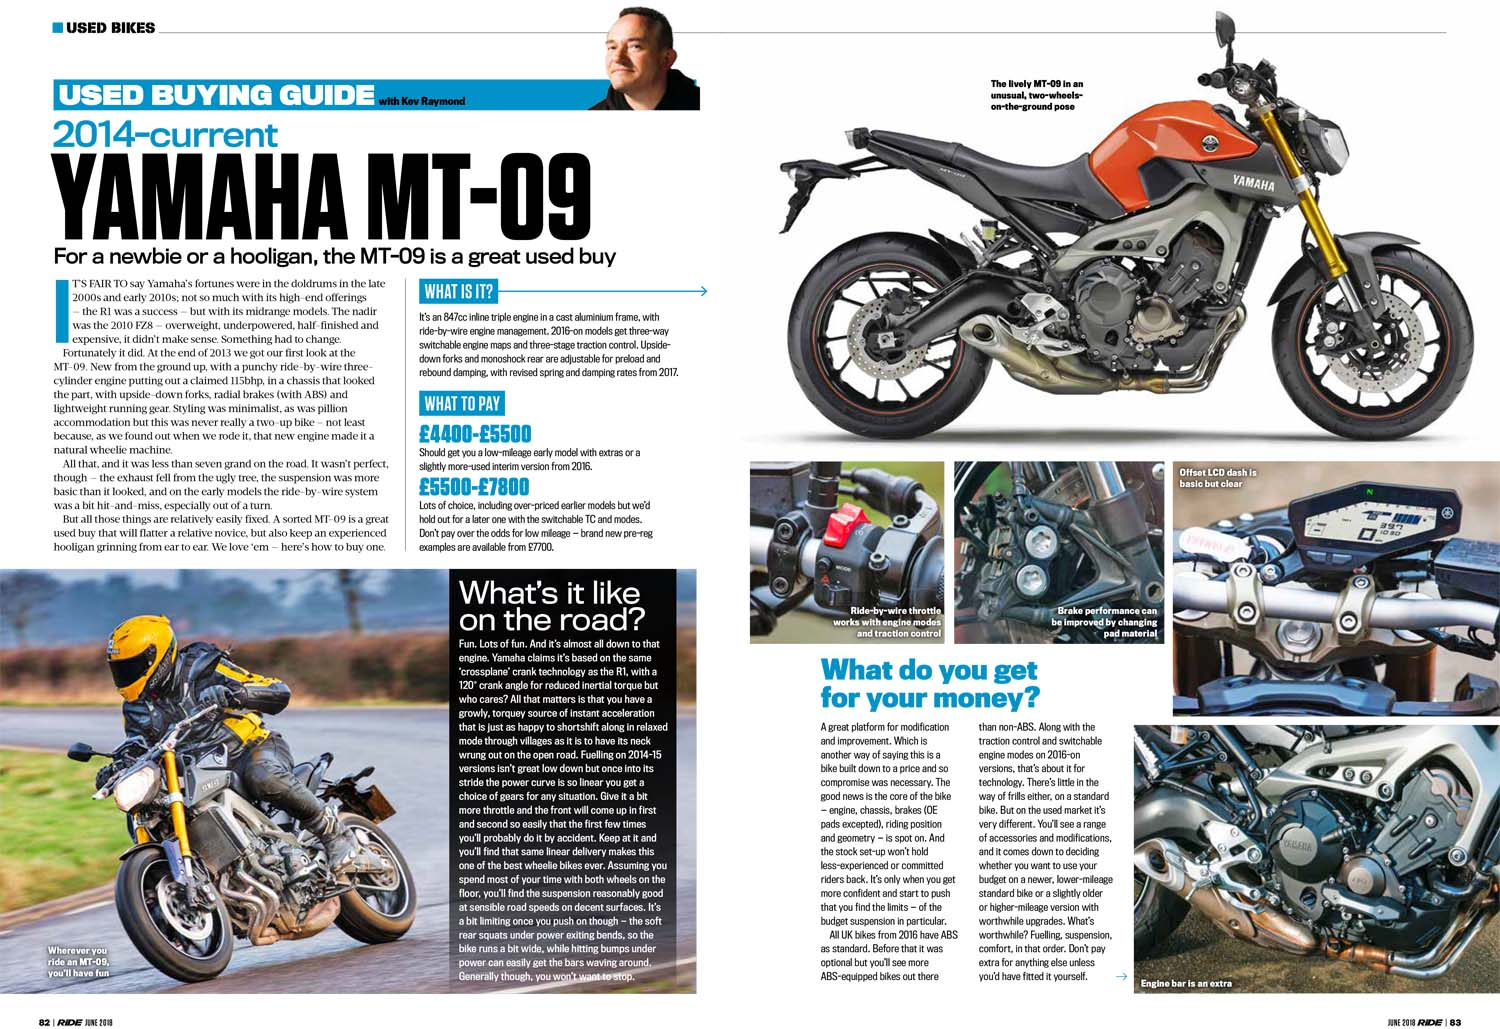 Used Buying Guide Yamaha MT-09